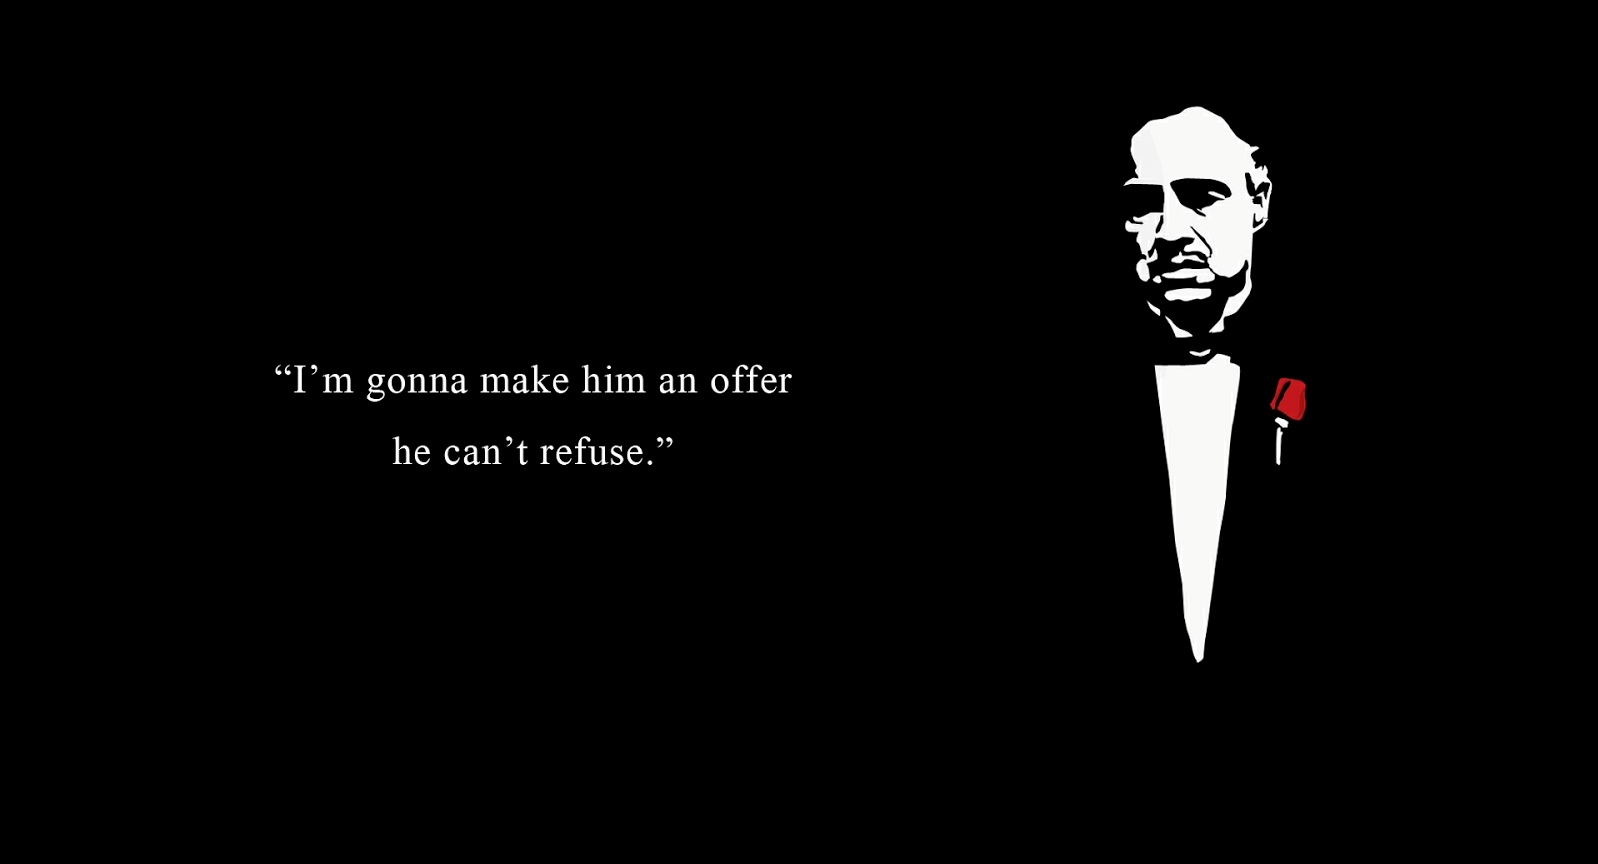 famous-quotes-hd-wallpaper-16